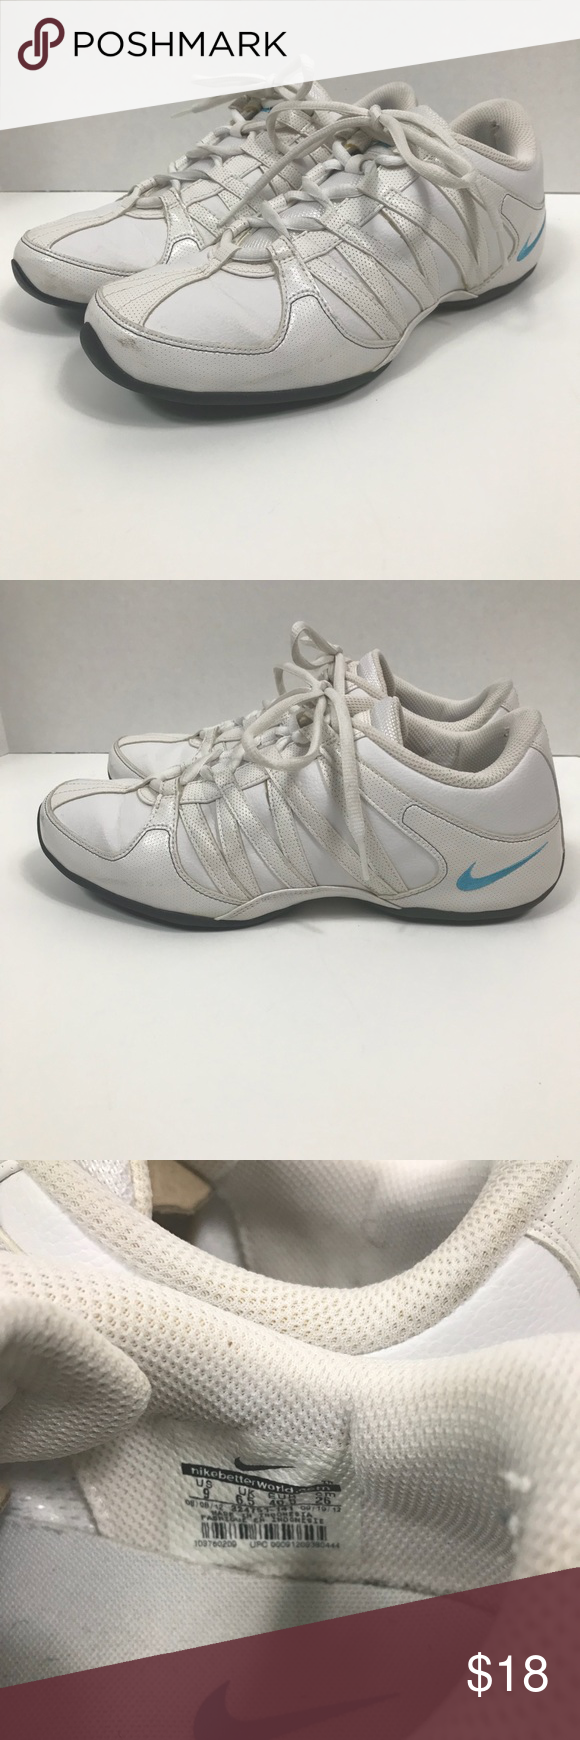 Nike Musique Iv Womens Athletic Dancing